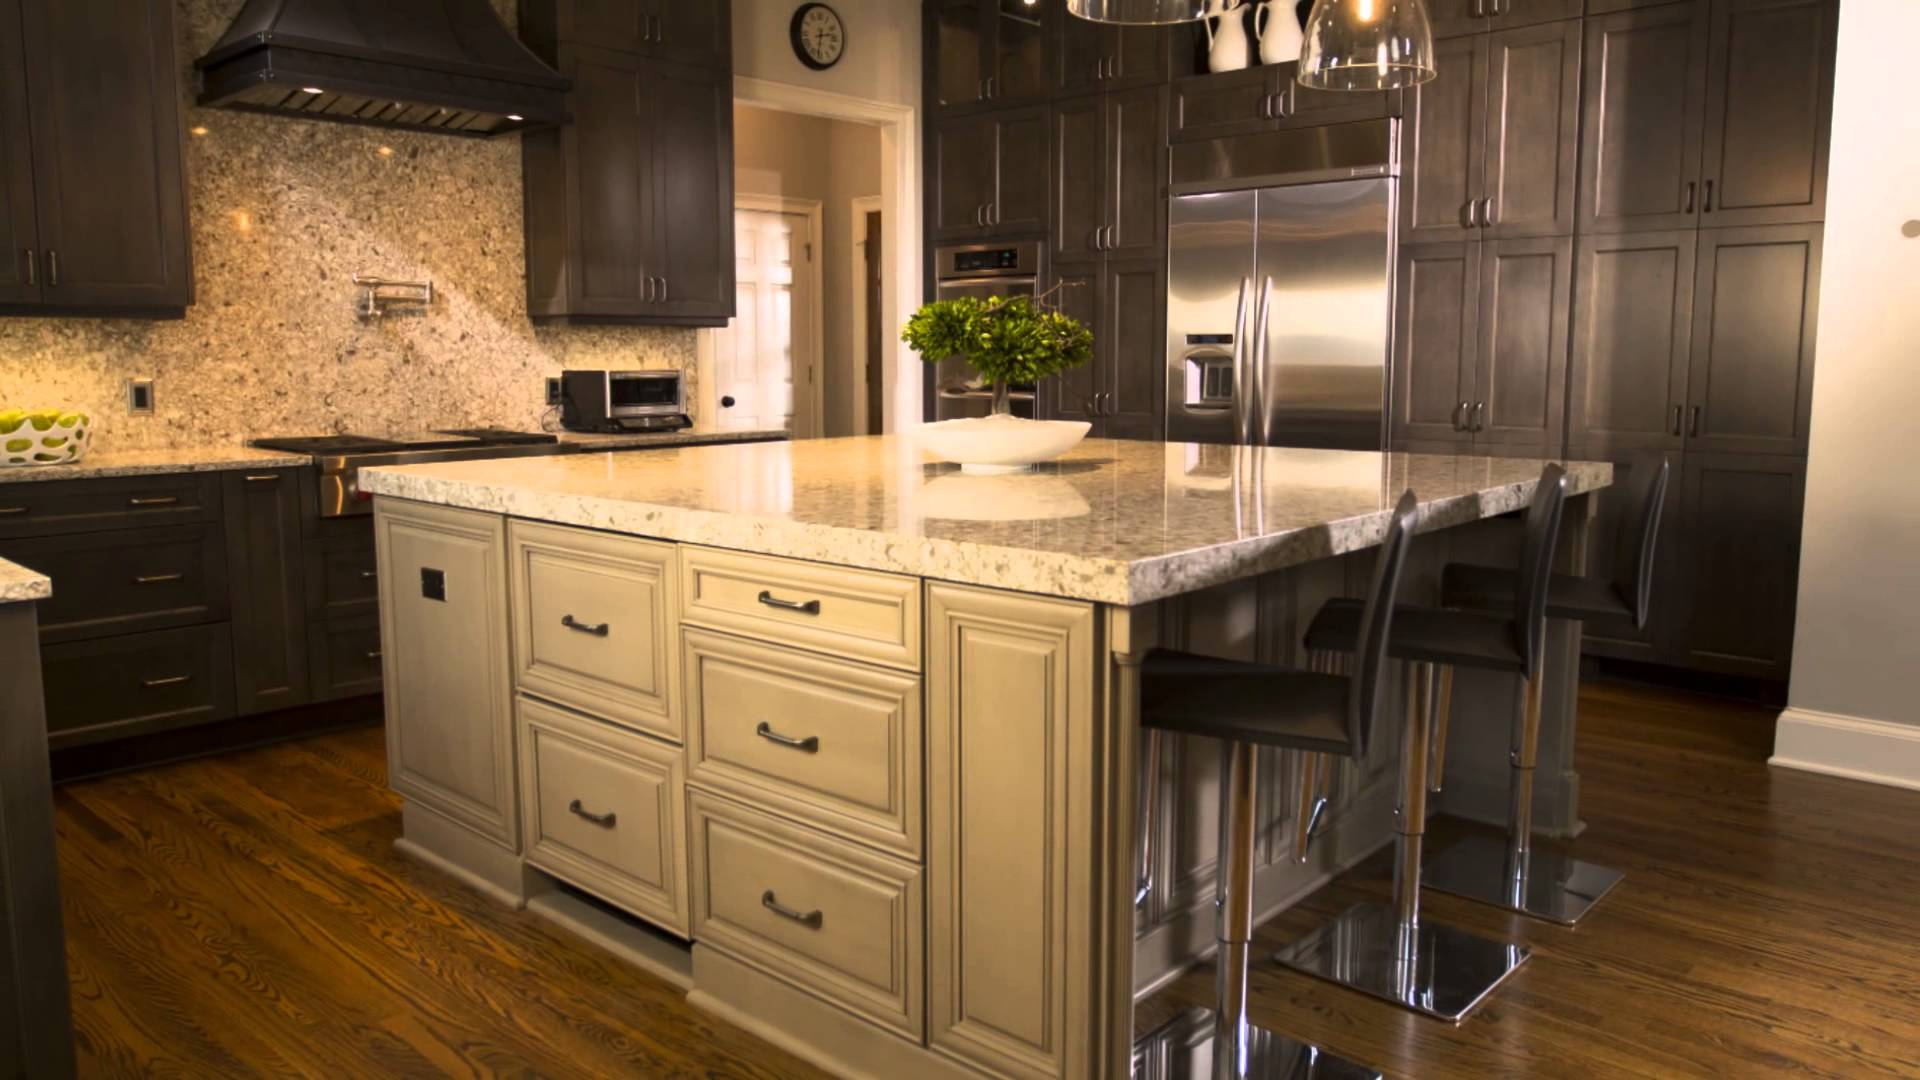 Supplier of KitchenCraft     Learn More